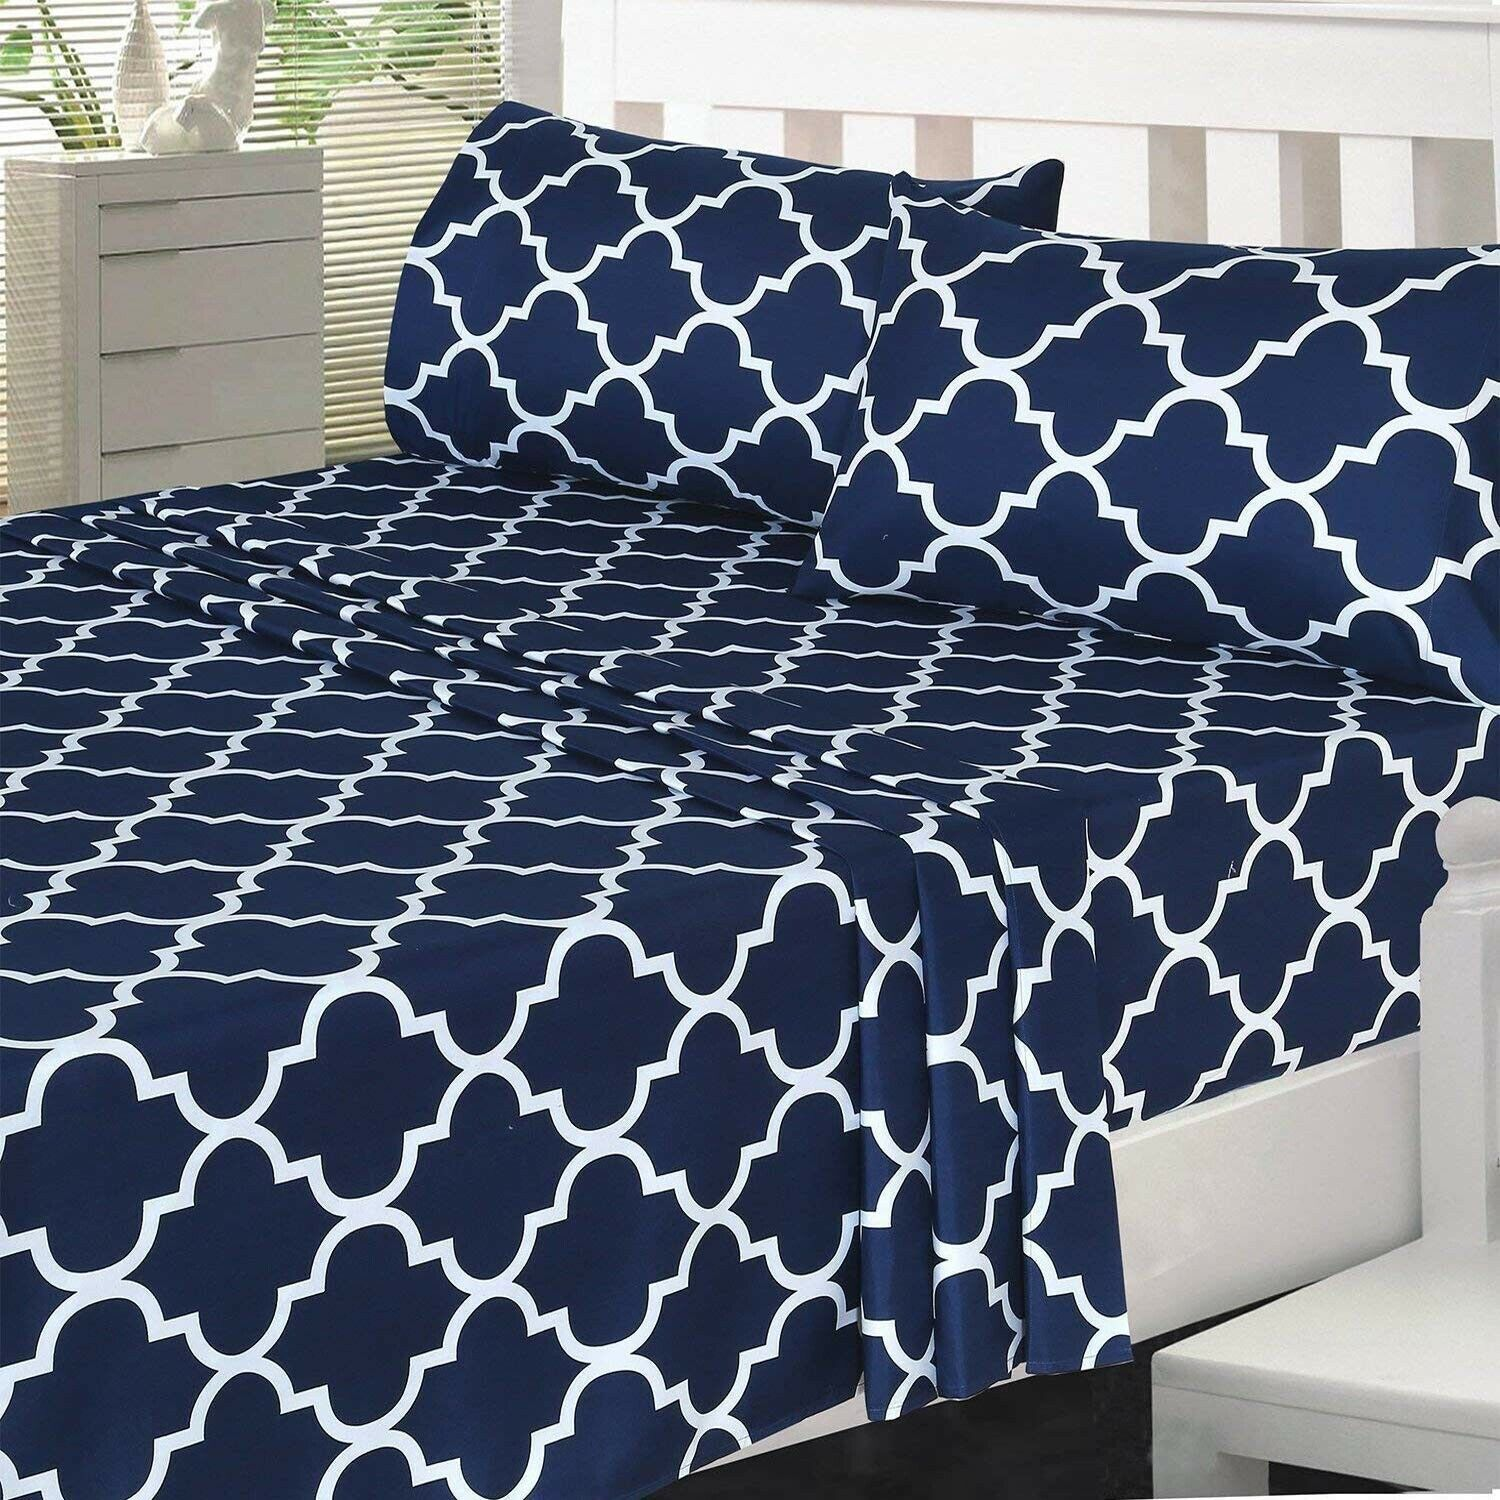 1 Fitted Sheet 1 Flat Sheet Queen, Navy and 2 Pillow Cases UB0371 Utopia Bedding 4 Piece Bed Sheet Set